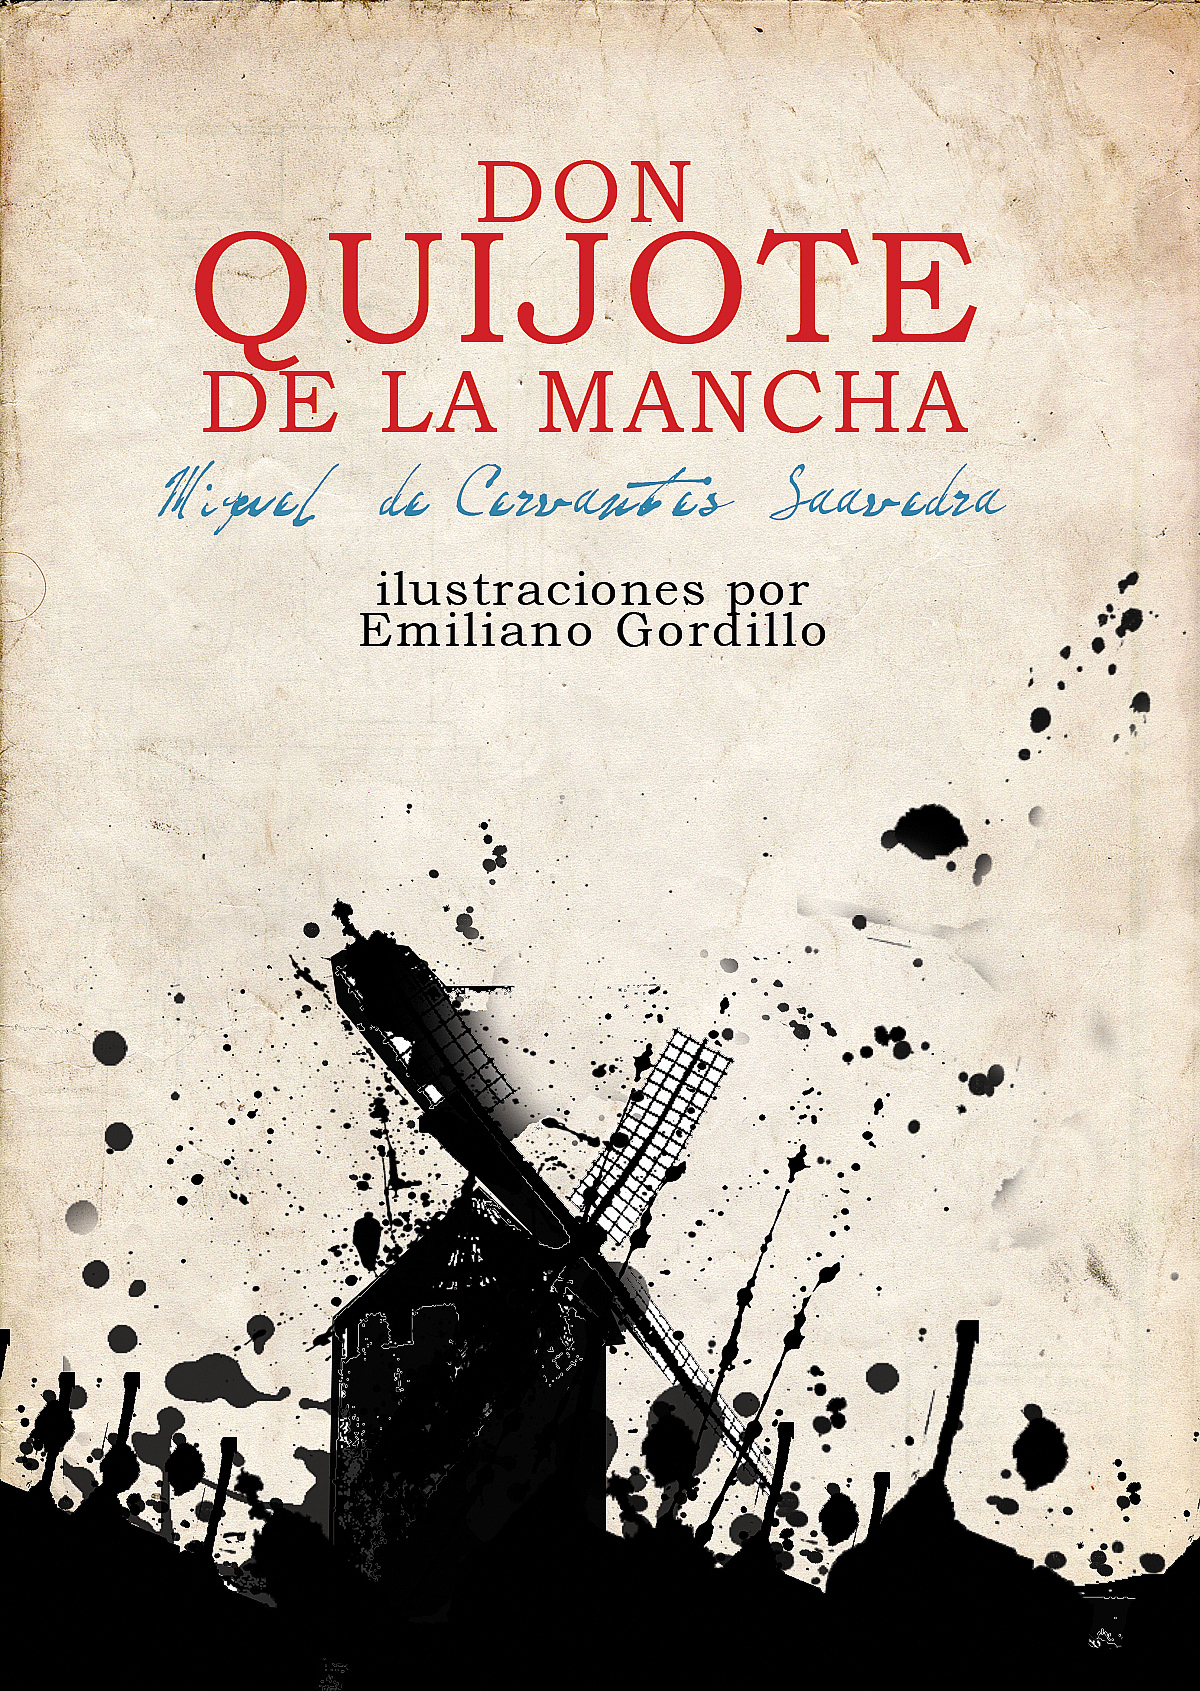 essays on the book don quixote de la mancha Miguel de cervantes saavedra's don quixote de la mancha on studybaycom - other, essay - tiana stewart | 100004119.